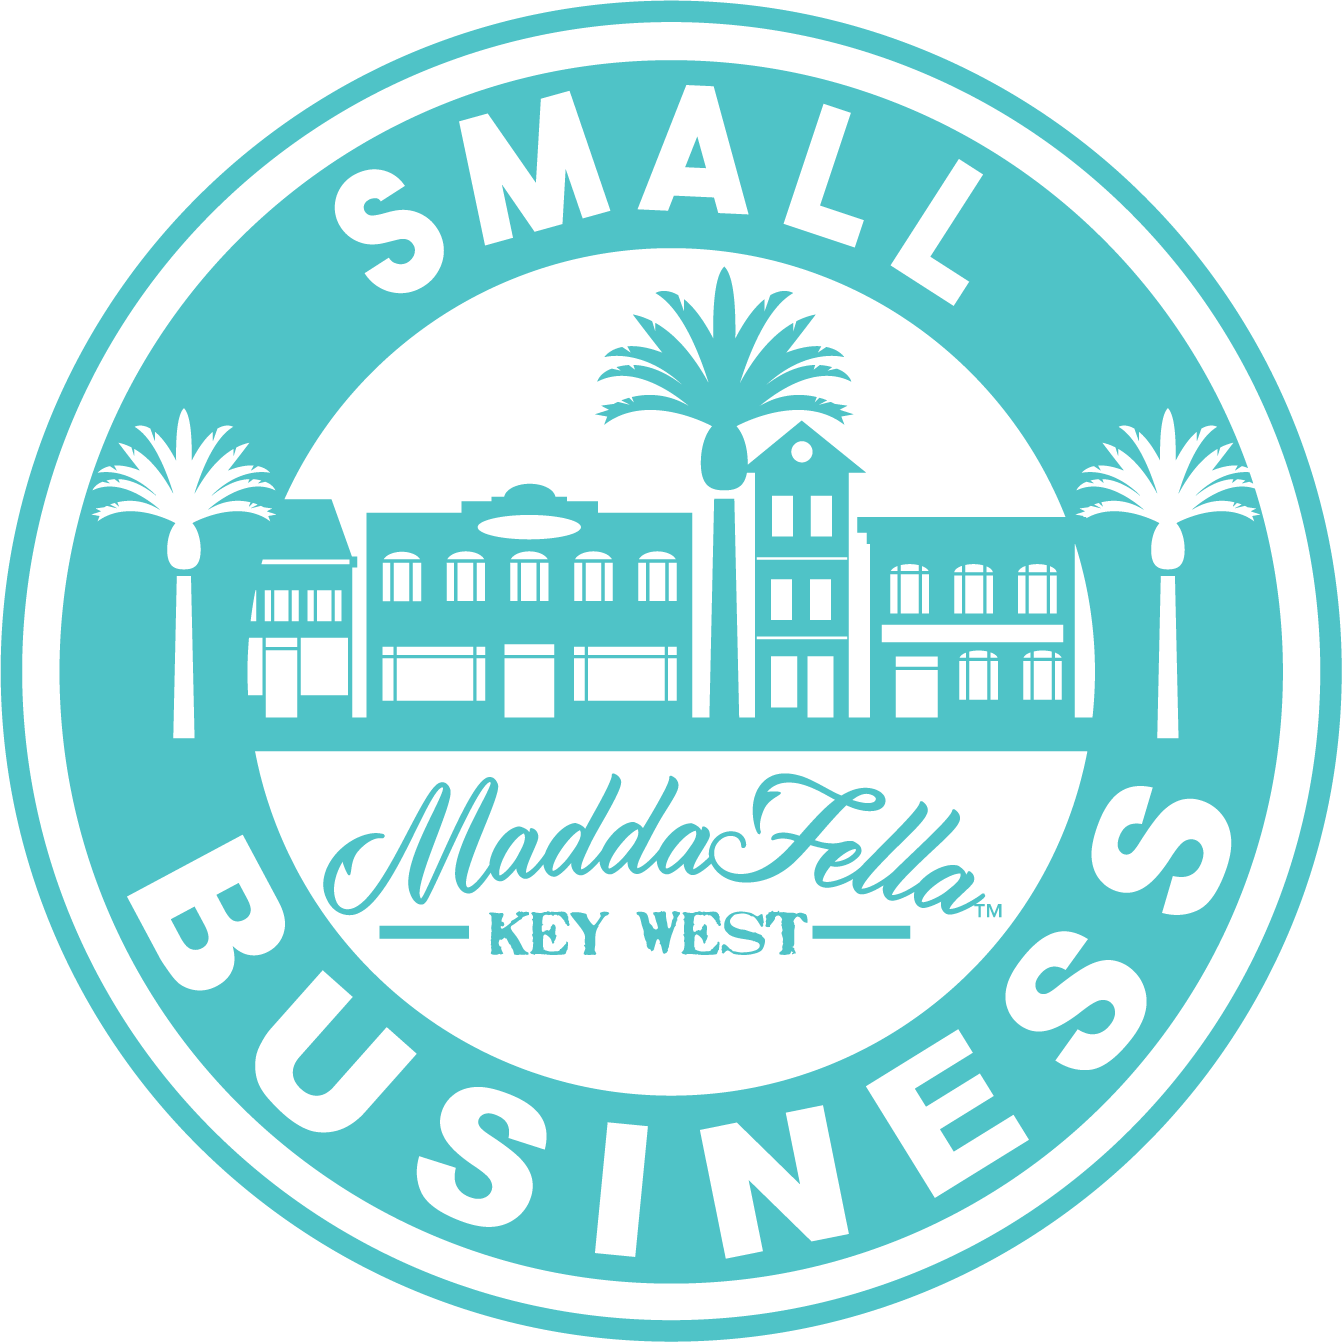 Madda Fella Small Business